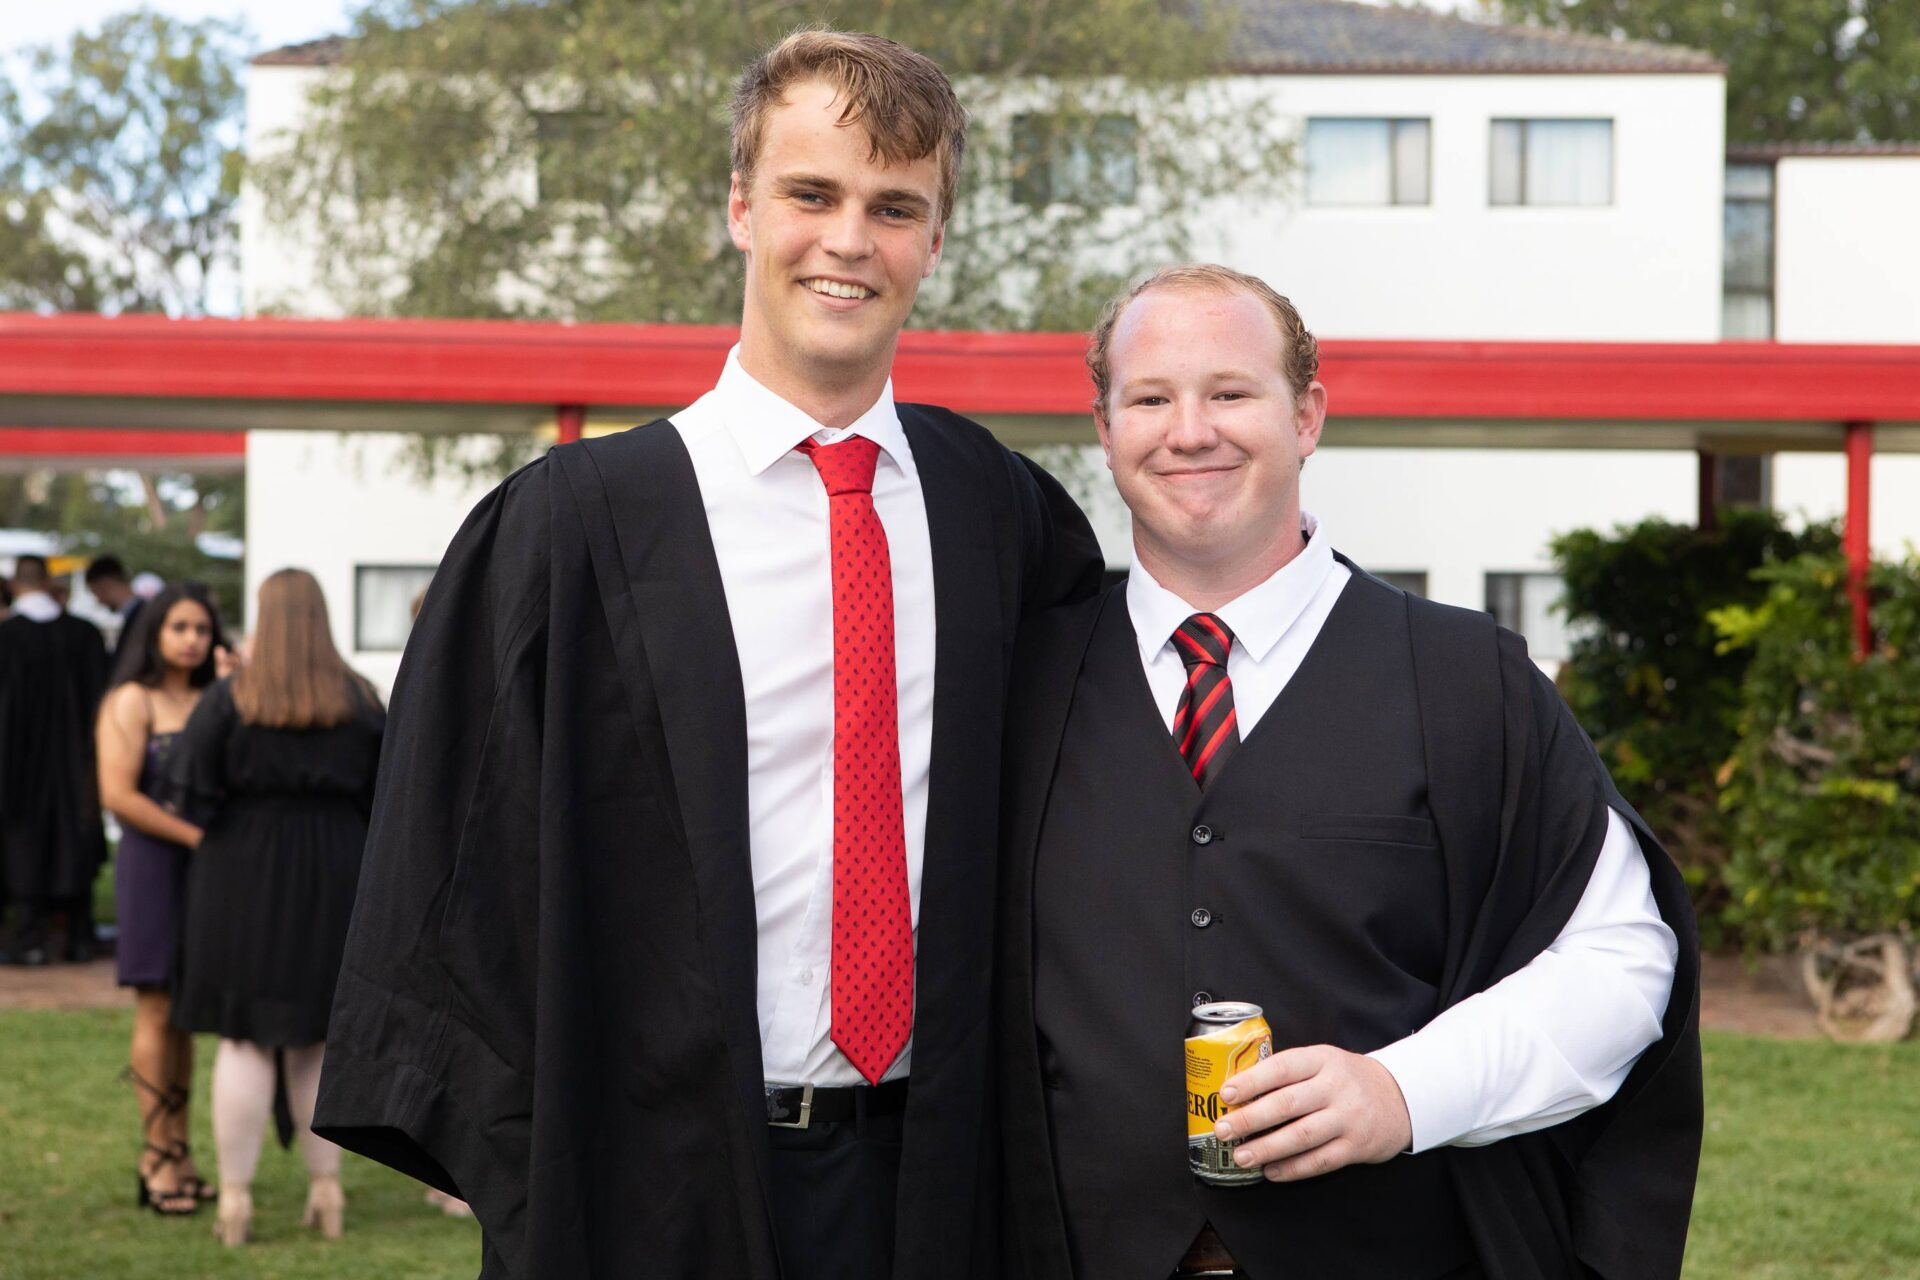 Connor Nest, Bachelor of Science with Honours, Austin/Earle Page College